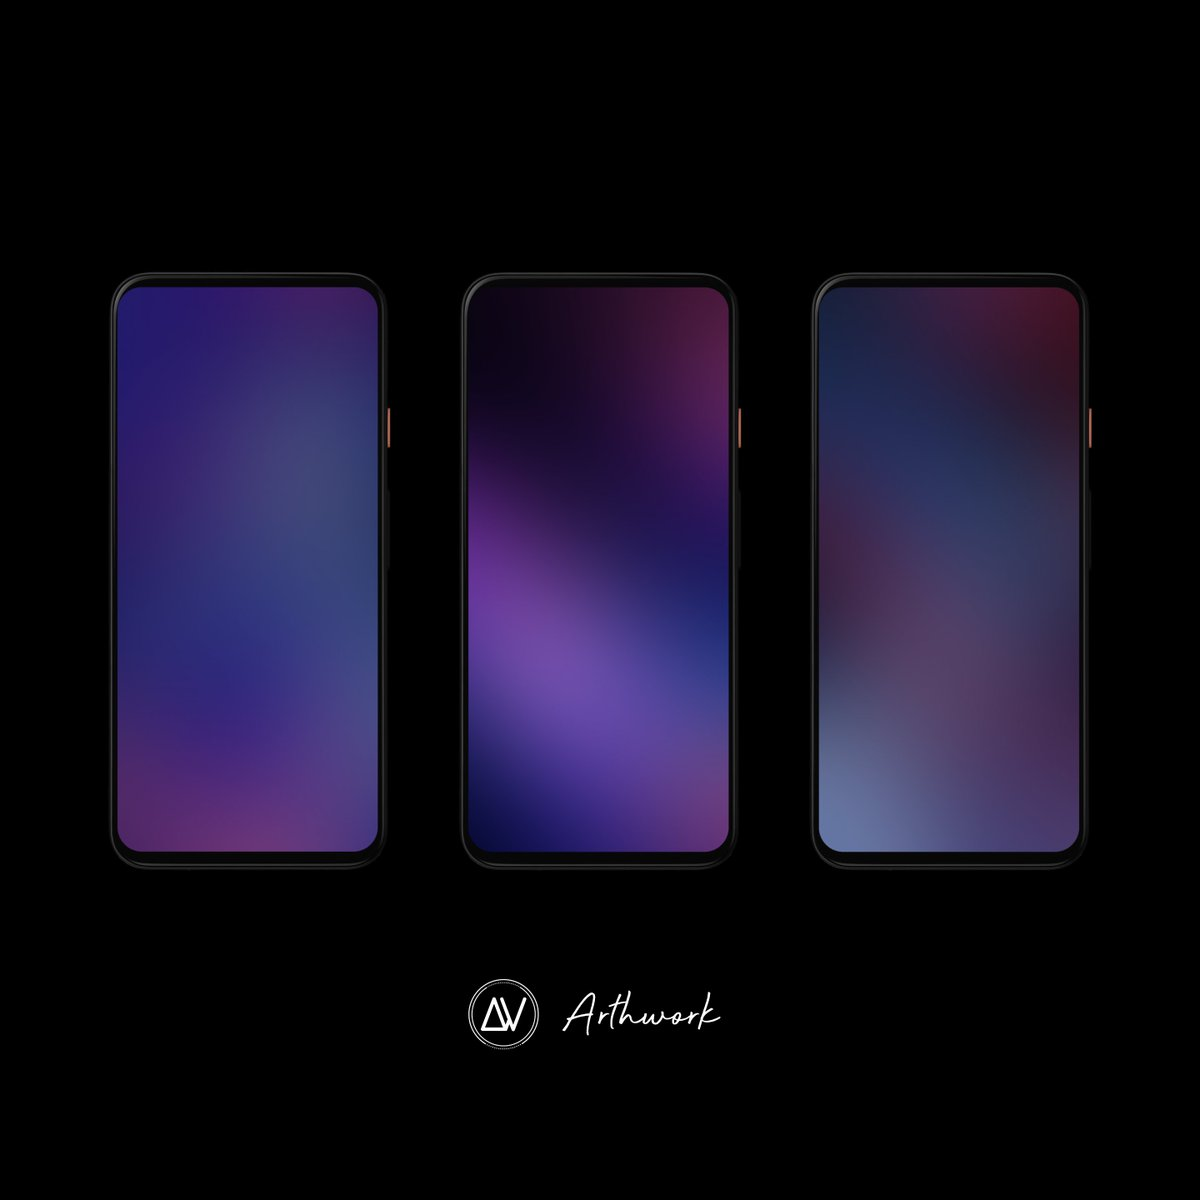 Arthwork On Twitter New Gradient Wallpapers Available For Any Android Phone Iphone 11 Pro Max Prod By Arthur1992as Download Https T Co Wlfwn3rkx6 Enjoy Https T Co Hju0f4zu9q